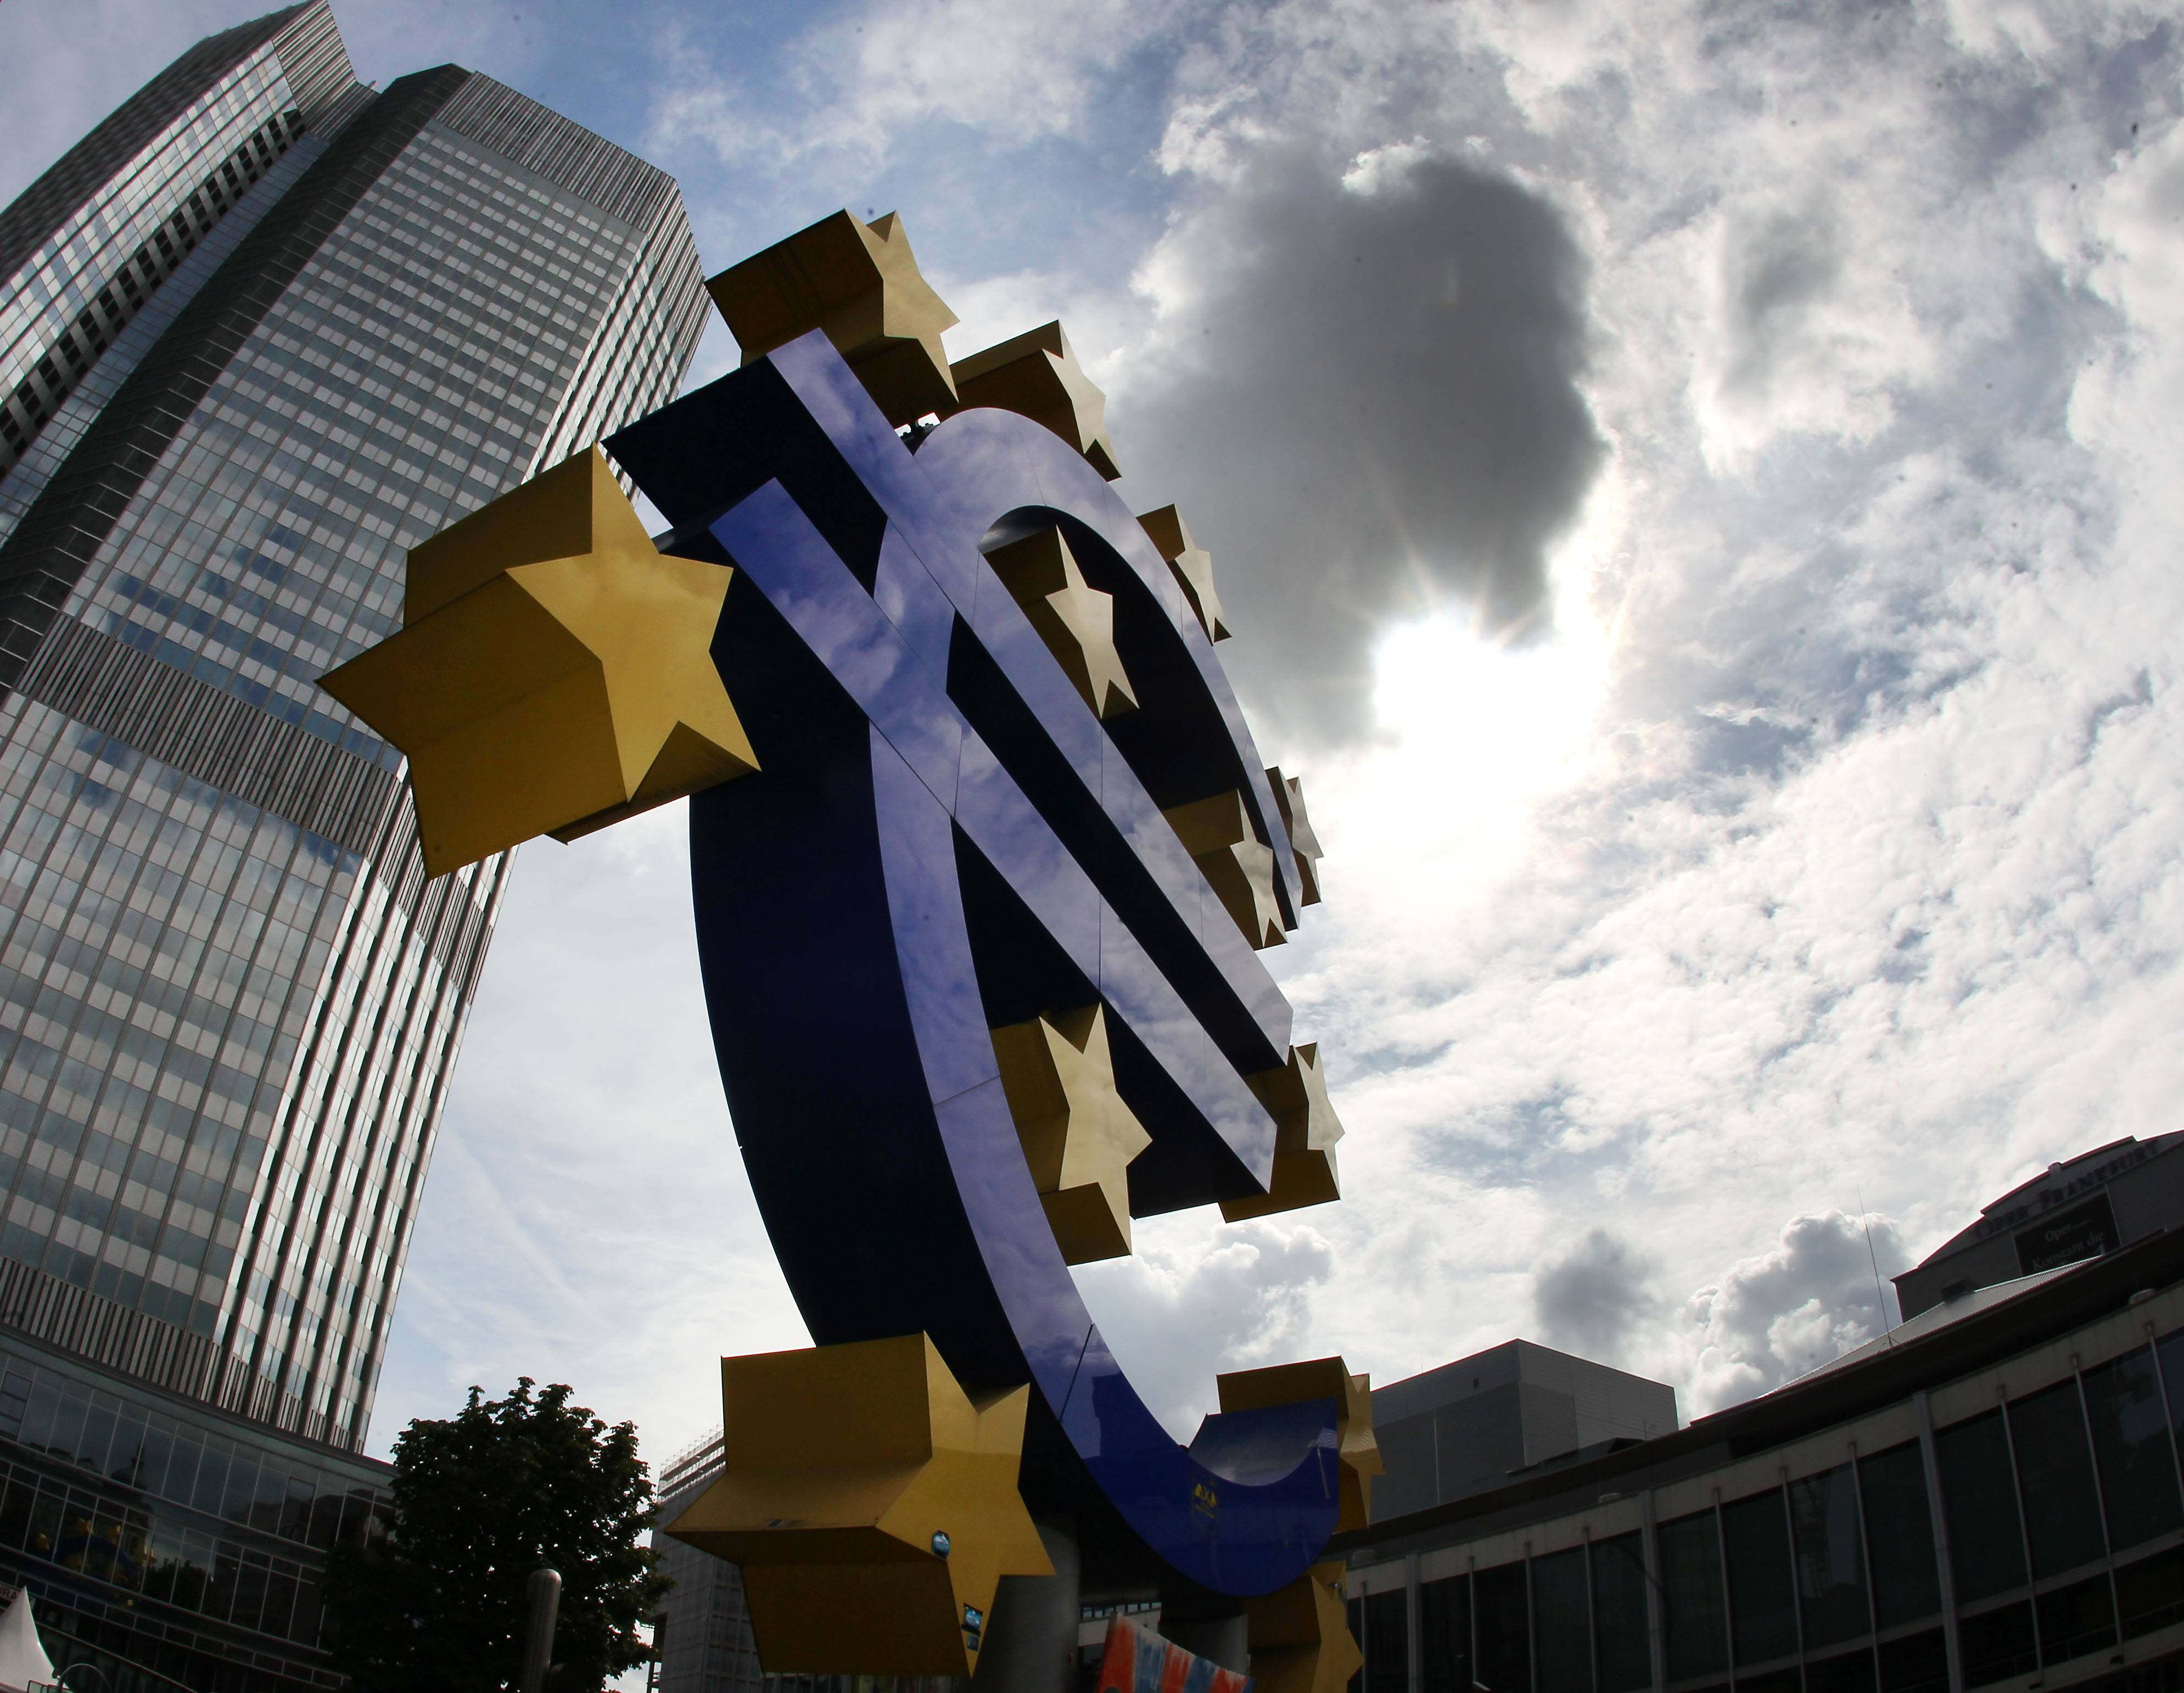 The euro sculpture in front of the headquarters of the European Central Bank, ECB, in Frankfurt, Germany. The crisis in Ukraine and a hesitant recovery in Europe are casting shadows over the European Central Bank's meeting Thursday.